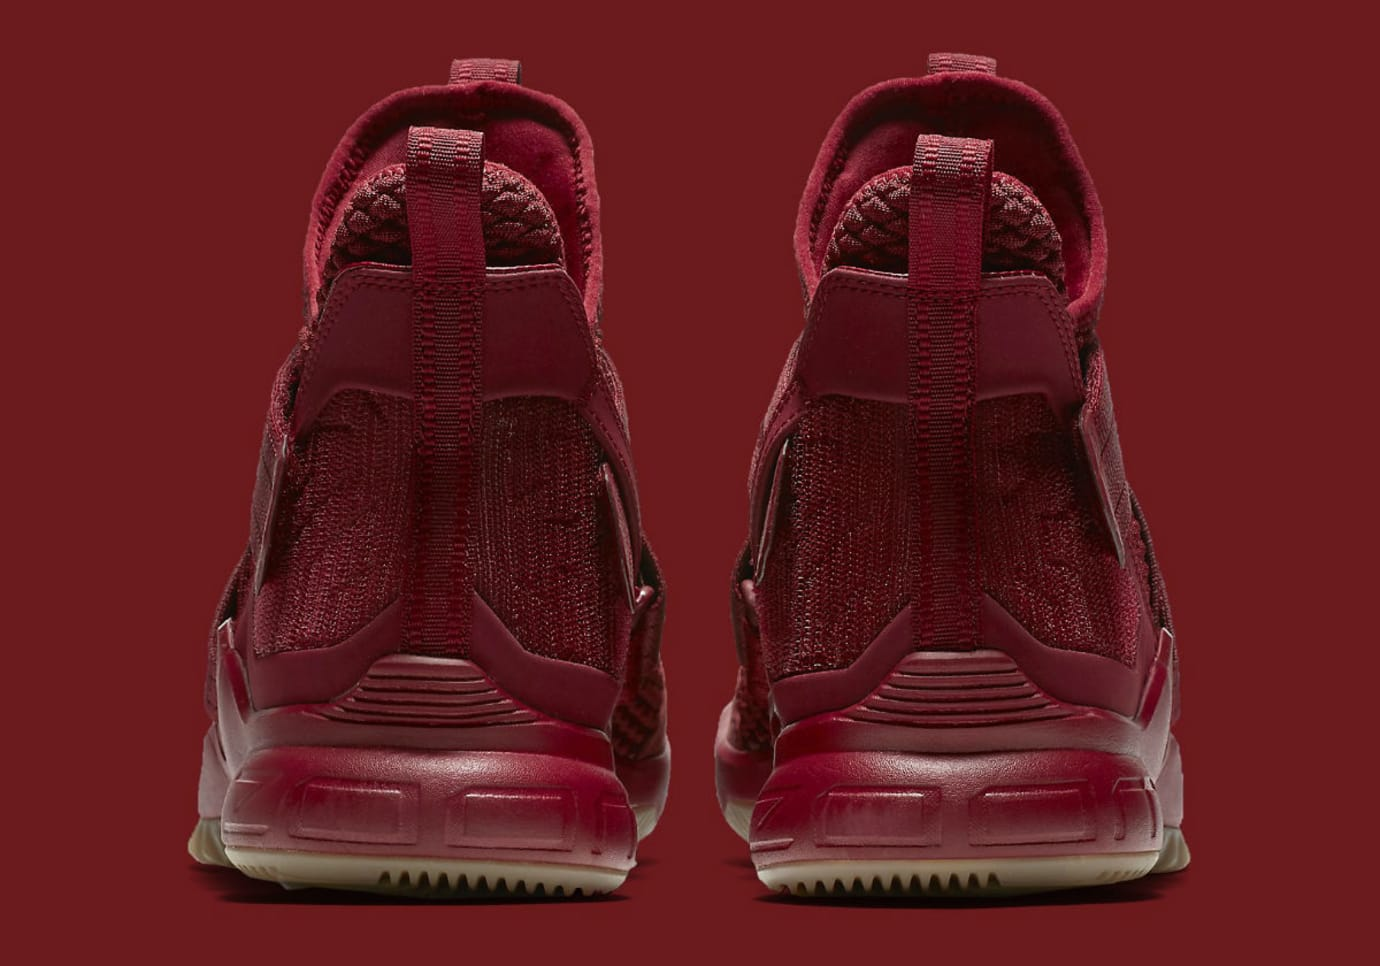 ae451a9e82d84 Image via Nike Nike LeBron Soldier 12 XII Team Red Cavs Release Date  AO4055-600 Heel